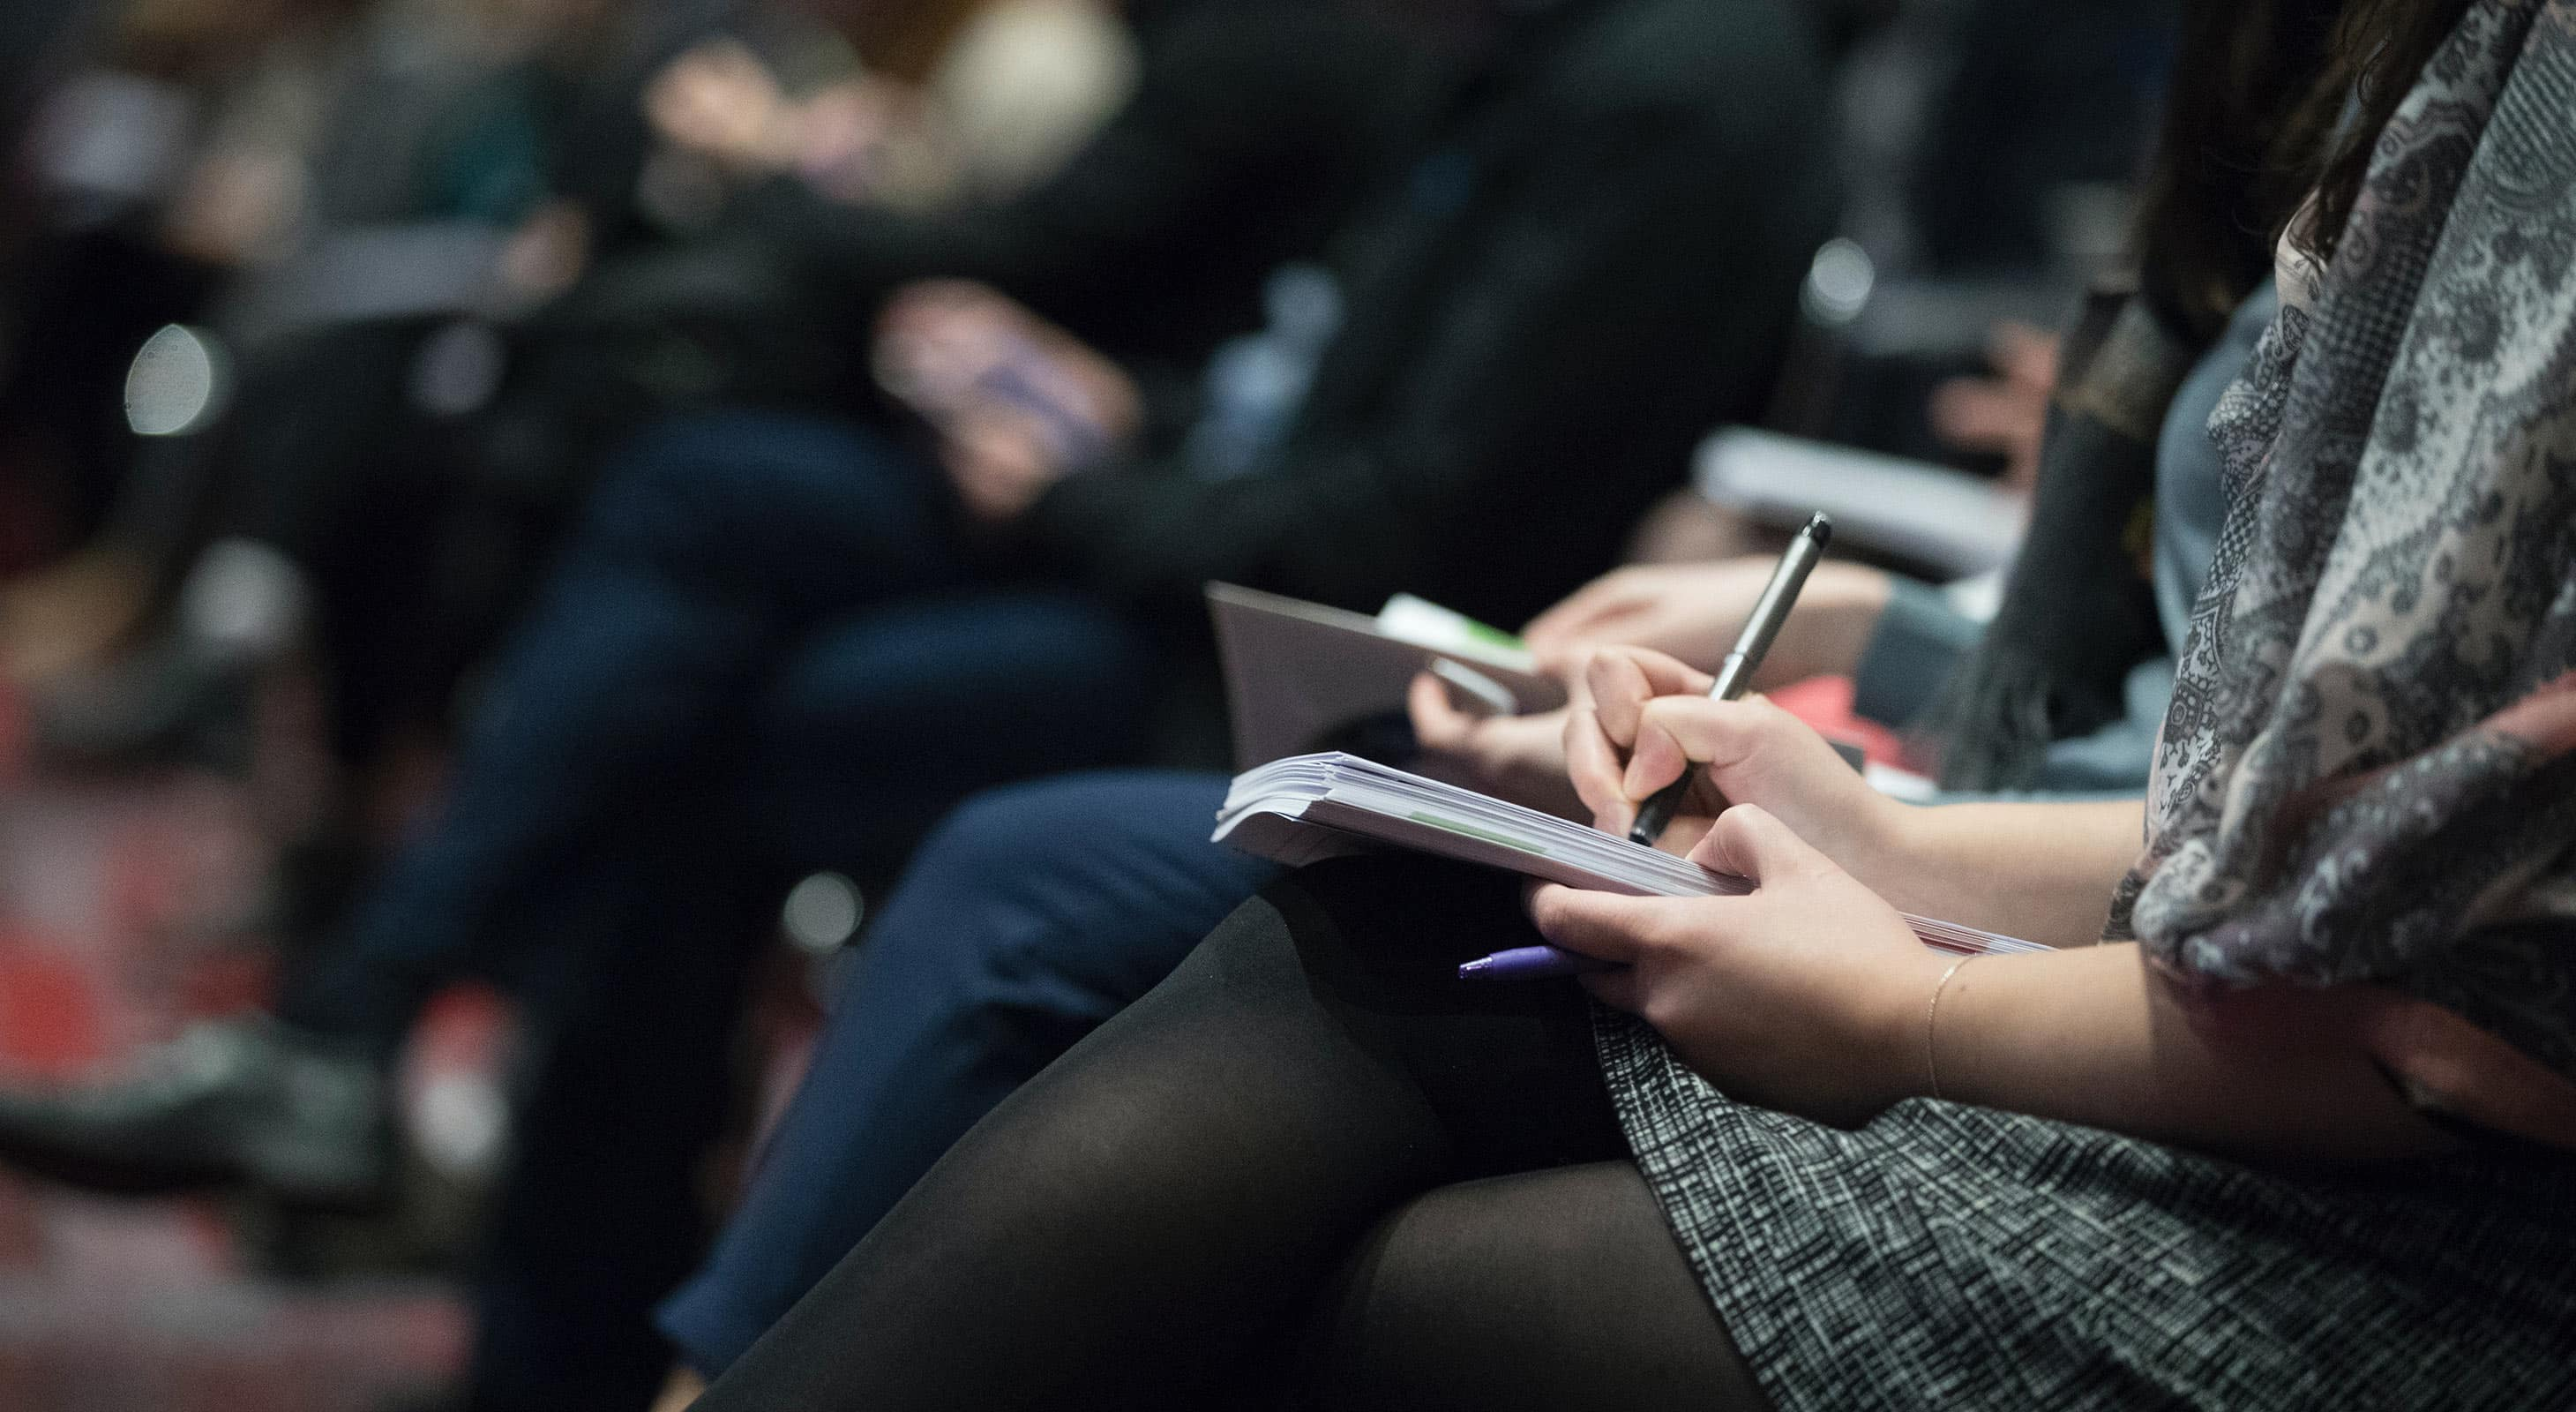 Attendees at a Conference taking notes